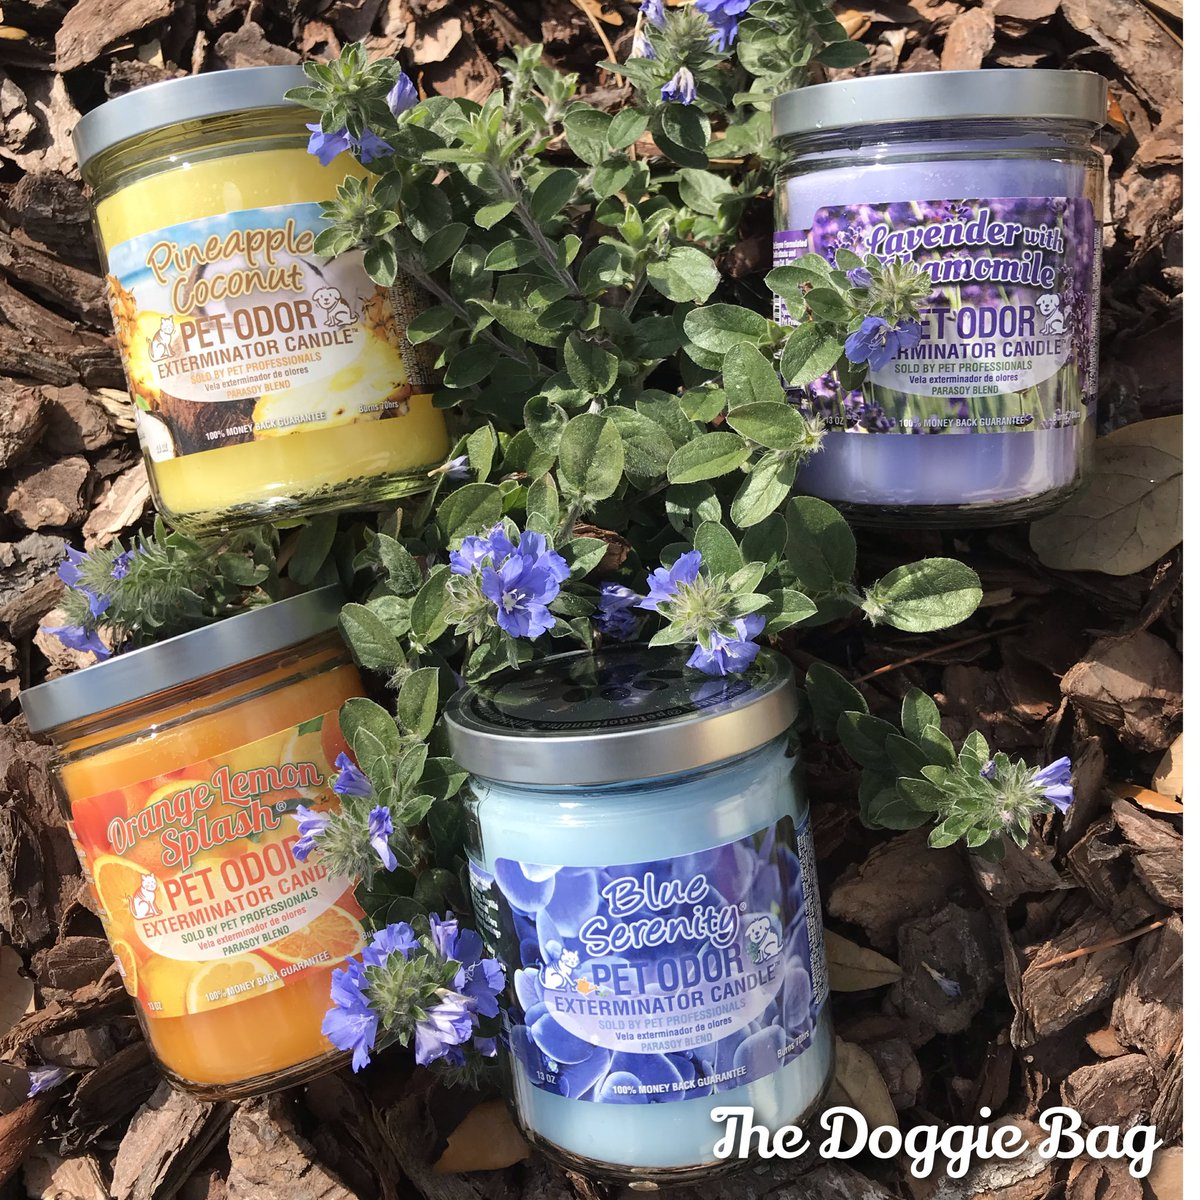 It's Time for a Breath of Fresh Air!🌬 Stop in & Sniff Out the newest arrival of #Candles @doggiebagboutique 🕯  #breathe #fresh #freshair #lavender #serenity #candle #thedoggiebag #petboutique #happyplace #shoplakeland #lakelandflorida #lakelandfl #dogmomsoflkld